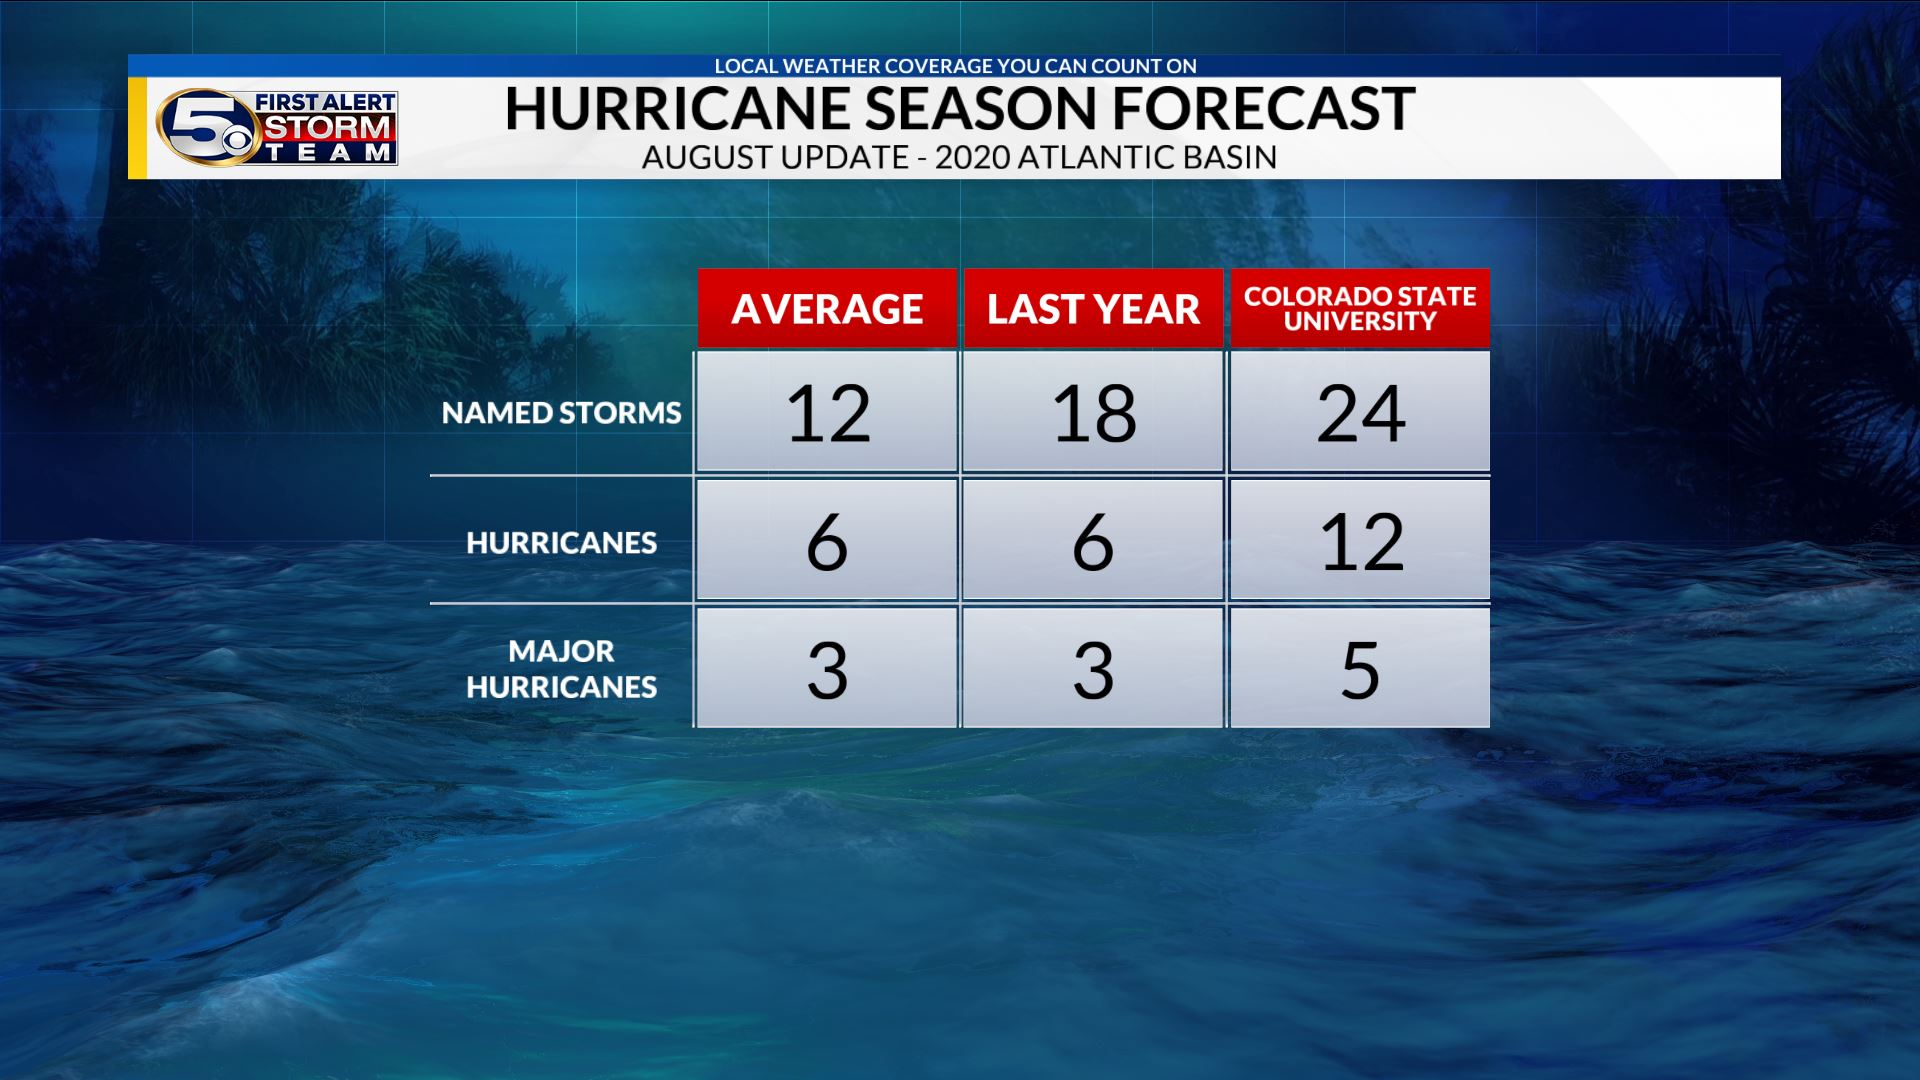 August Update Calls for Extremely Active Hurricane Season